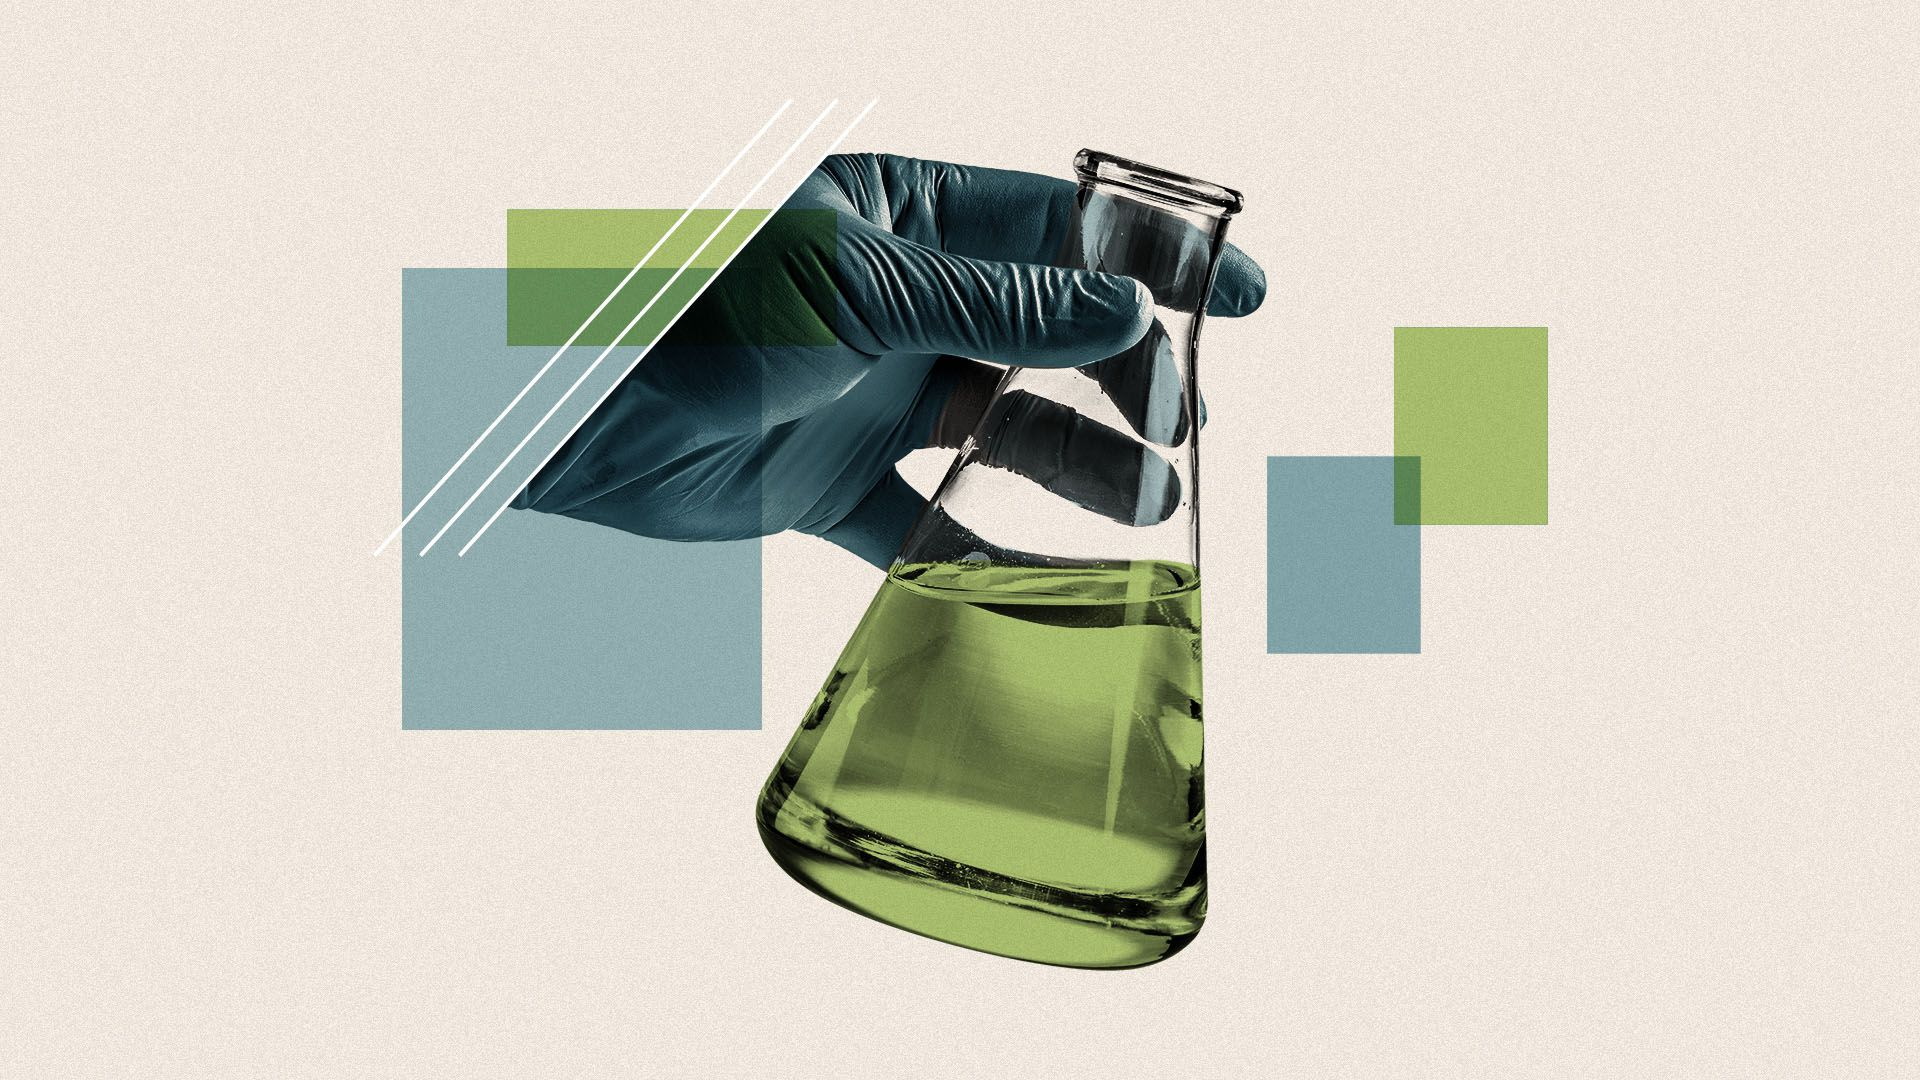 Illustration of a hand in a medical glove holding a beaker full of liquid